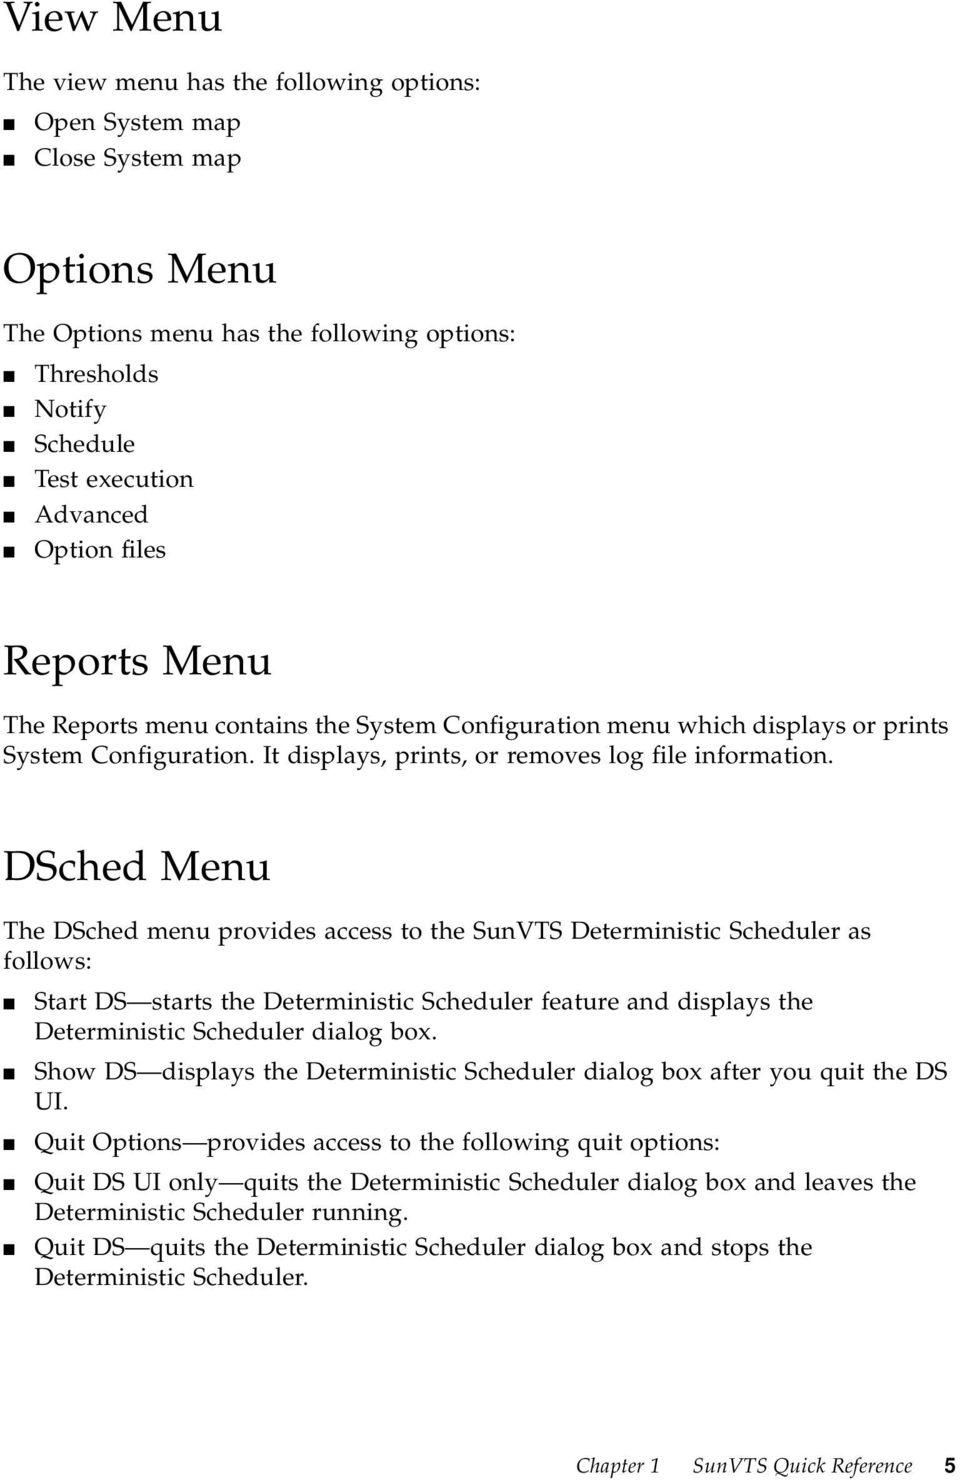 DSched Menu The DSched menu provides access to the SunVTS Deterministic Scheduler as follows: Start DS starts the Deterministic Scheduler feature and displays the Deterministic Scheduler dialog box.